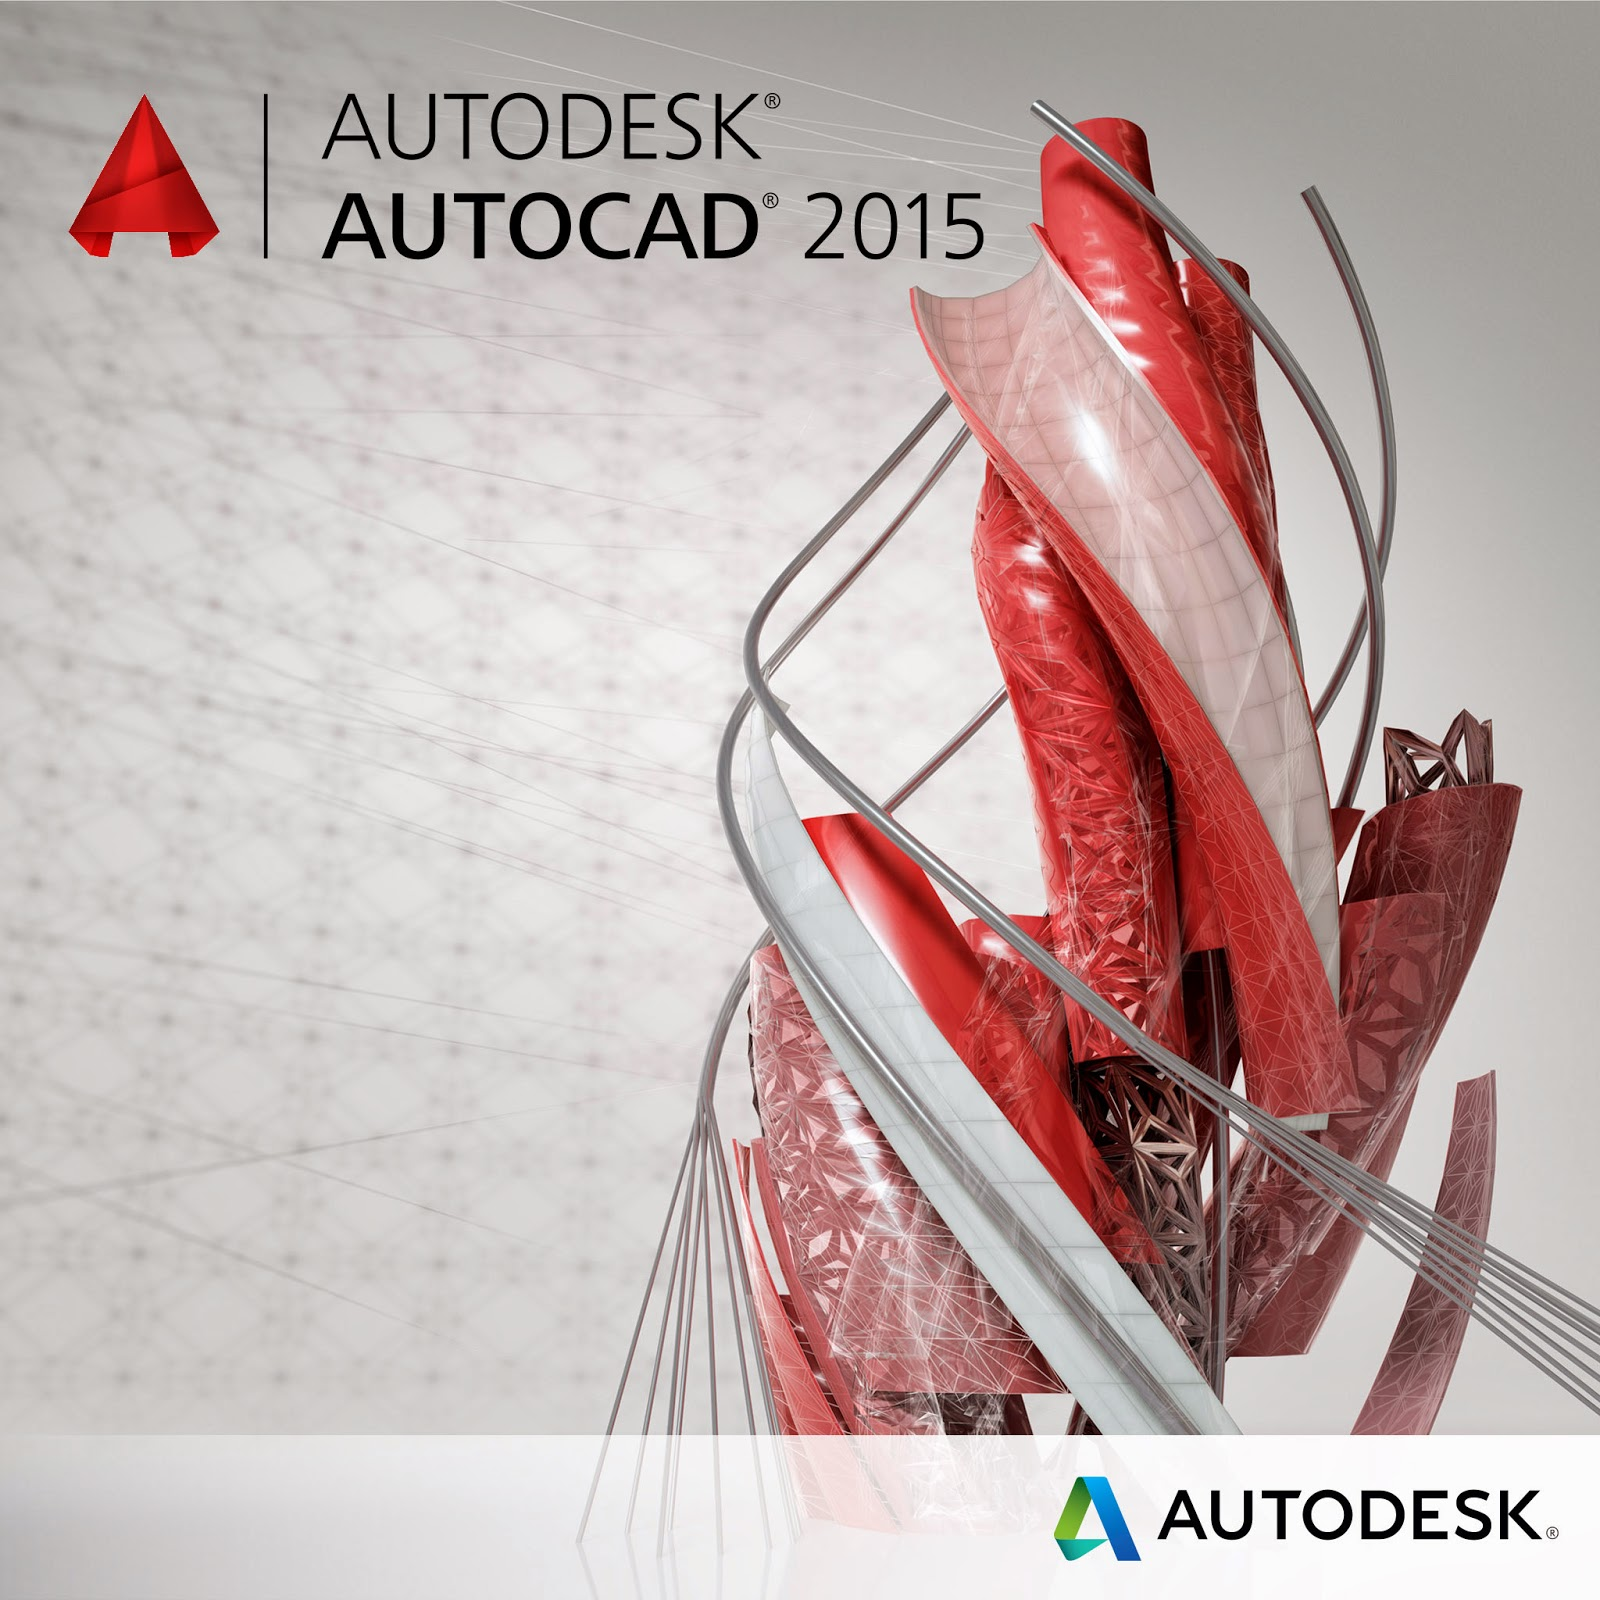 Budweiser Blog: AutoCAD 2015 - hot off the press